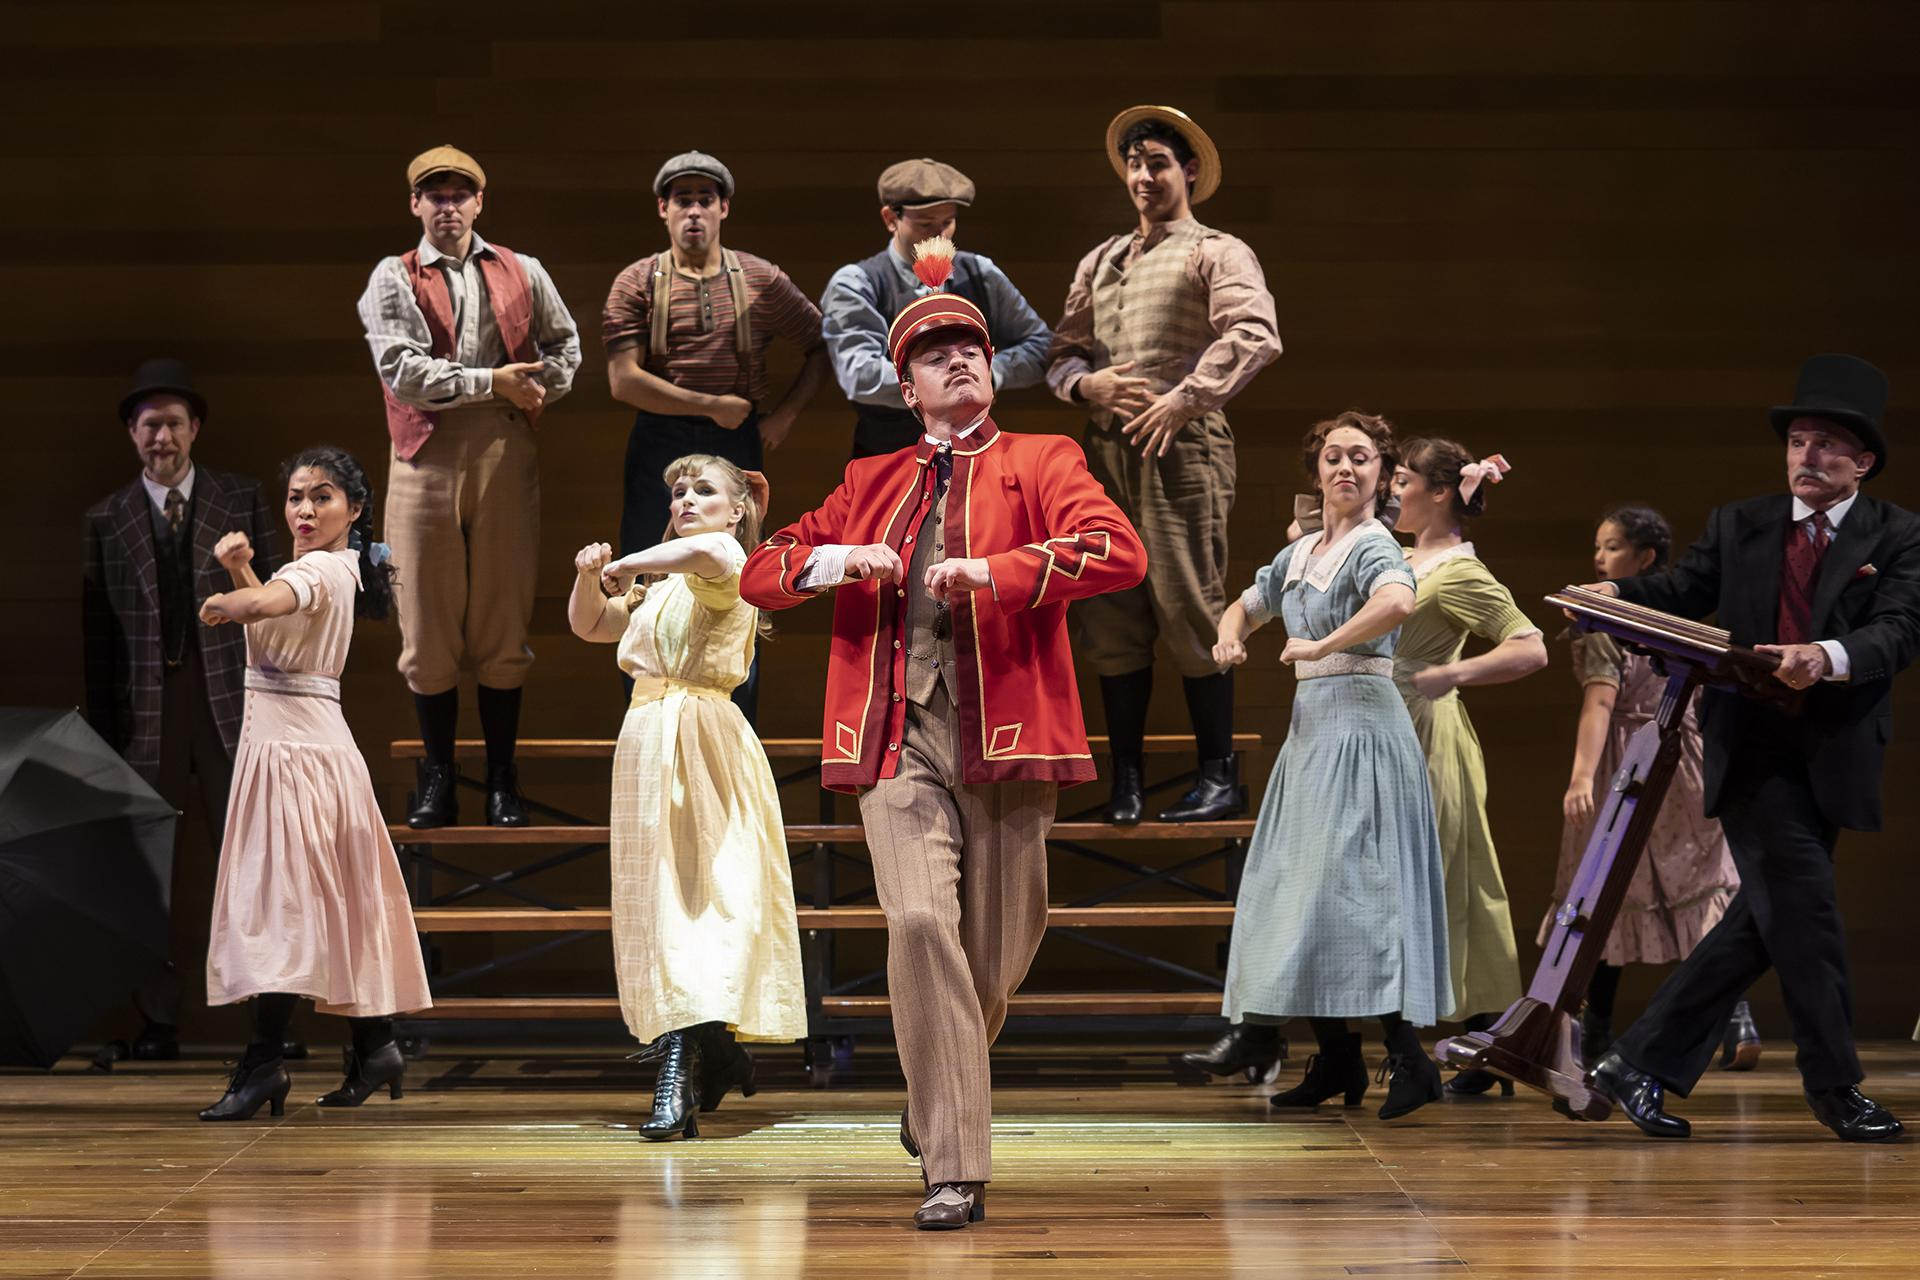 "James Konicek, Ayana Strutz, Matt Casey, Tommy Rivera-Vega, Kelly Felthous, Christopher Kale Jones, Geoff Packard, Alejandro Fonseca, Laura Savage, Adrienne Velasco-Storrs, Sophie Ackerman and Ron E. Rains in ""The Music Man"" at the Goodman Theatre. (Photo by Liz Lauren)"